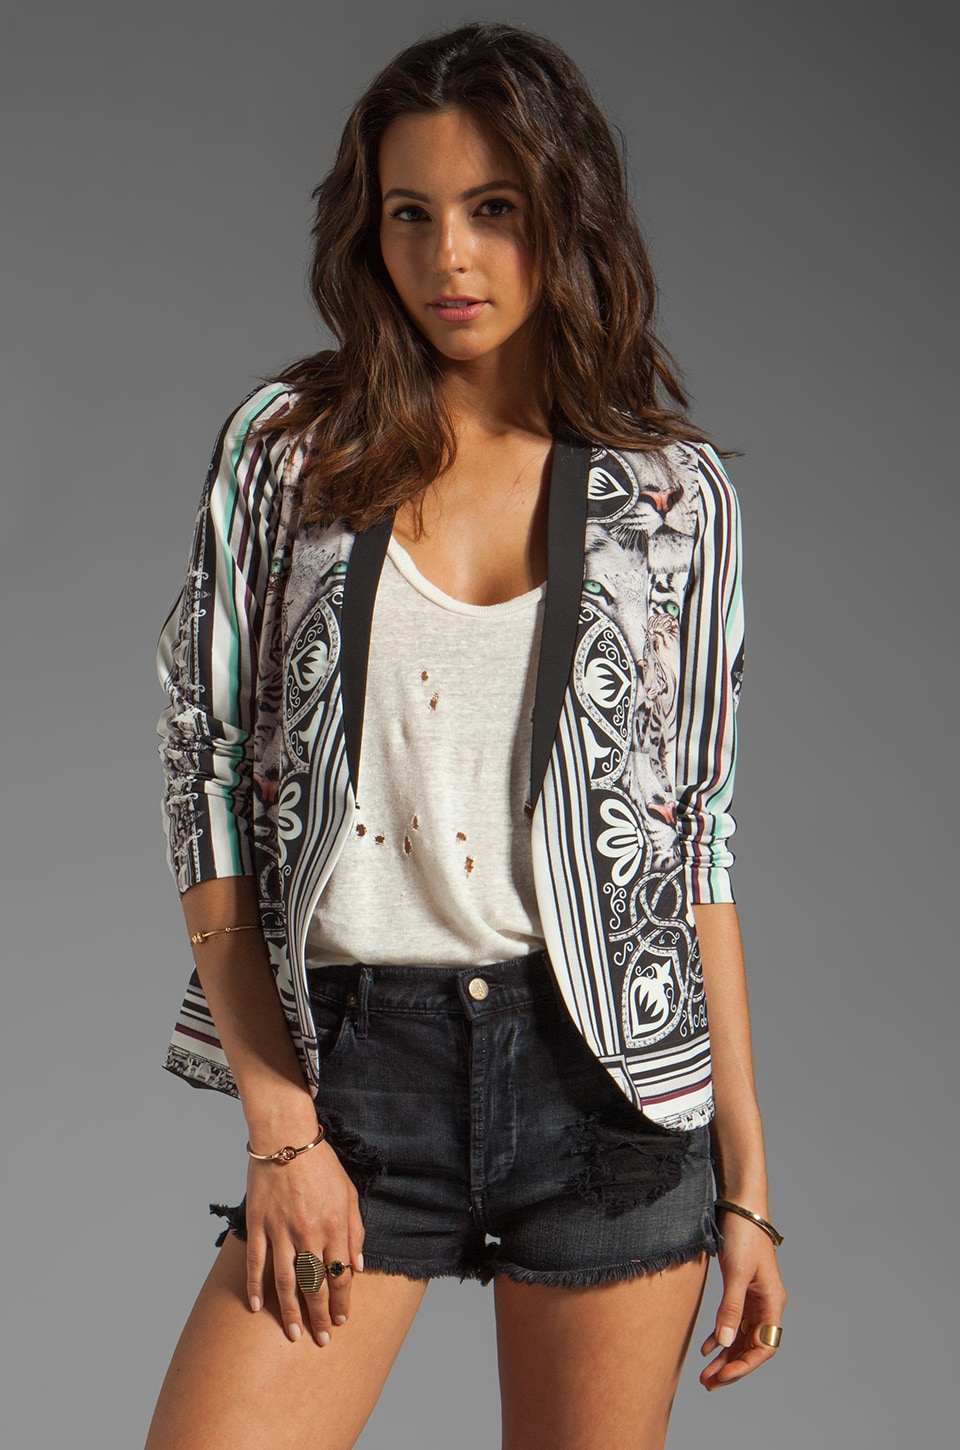 Clover Canyon Eye Of The Tiger Jacket in Multi